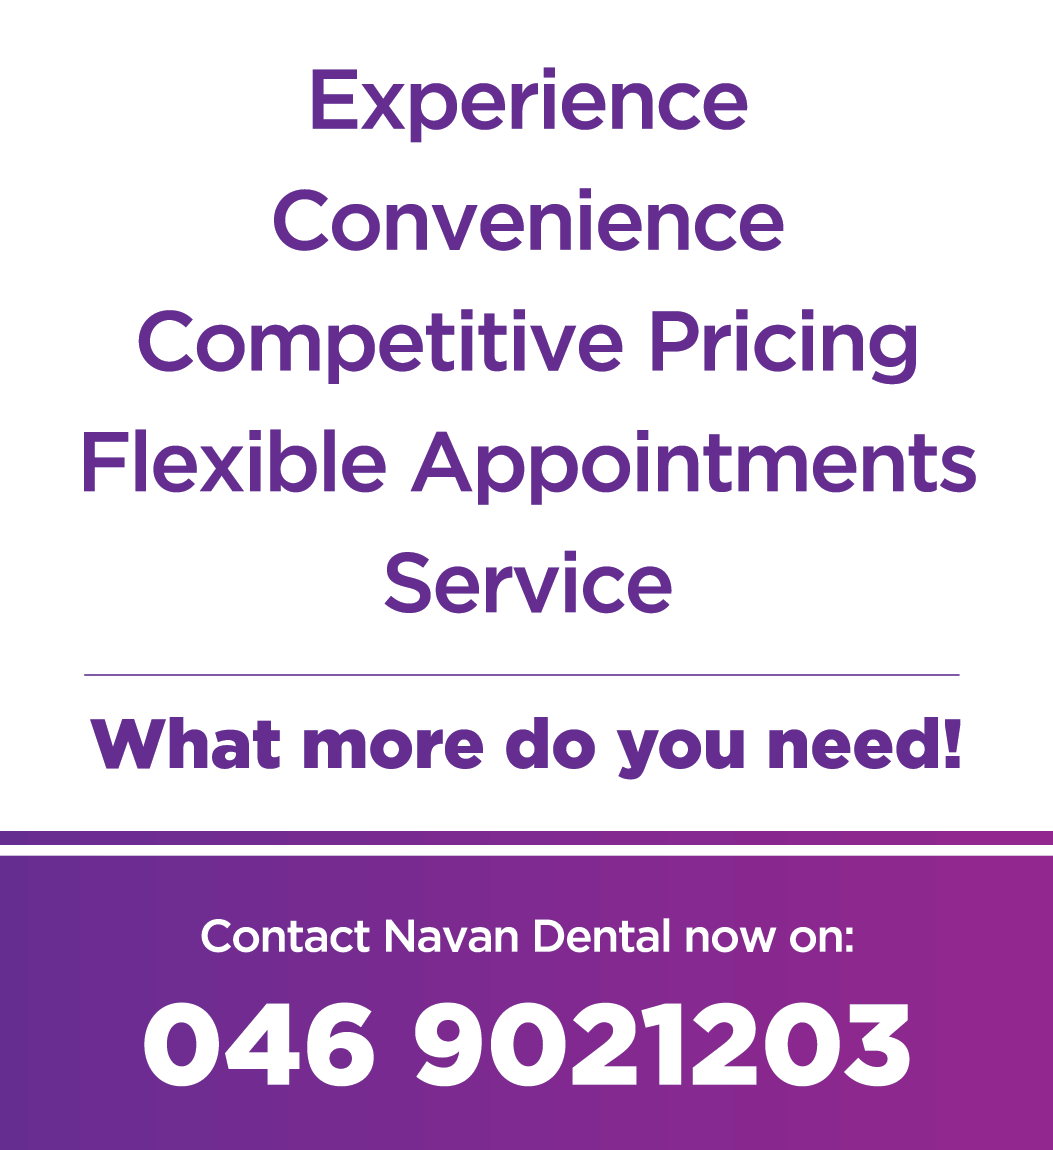 Navan Dental - Quality Service